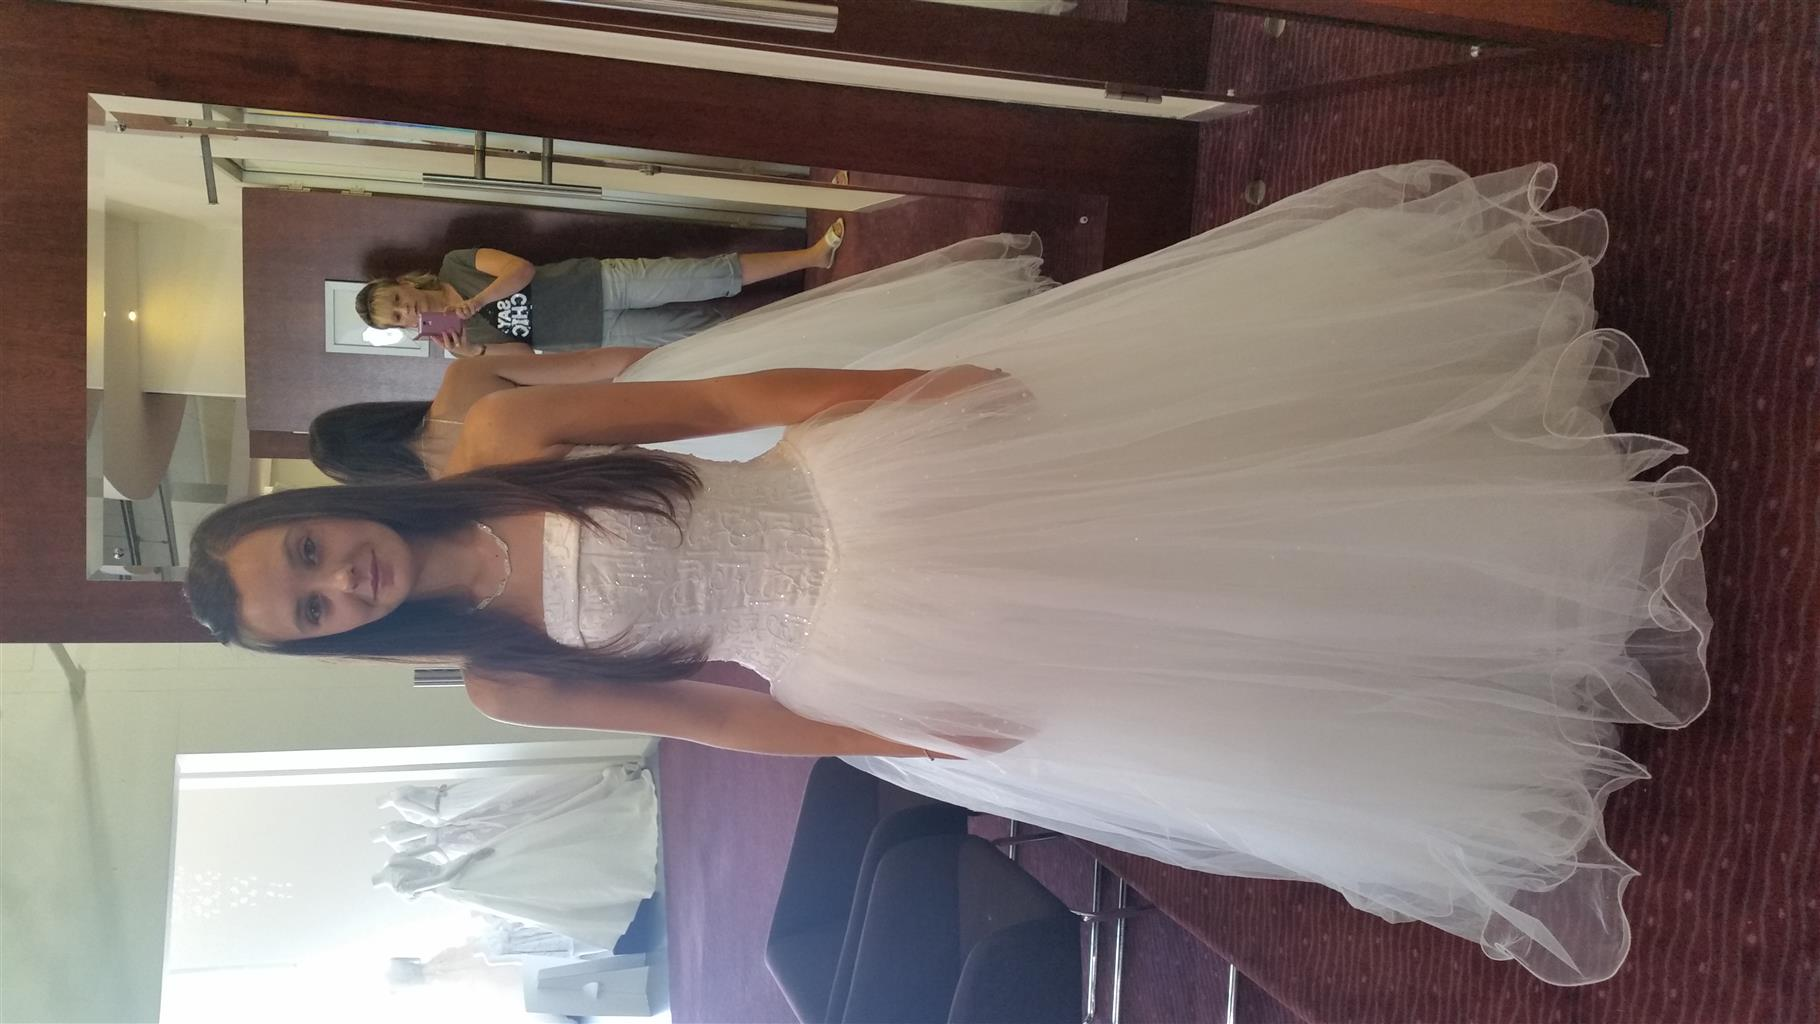 Wedding dress size 8 for sale